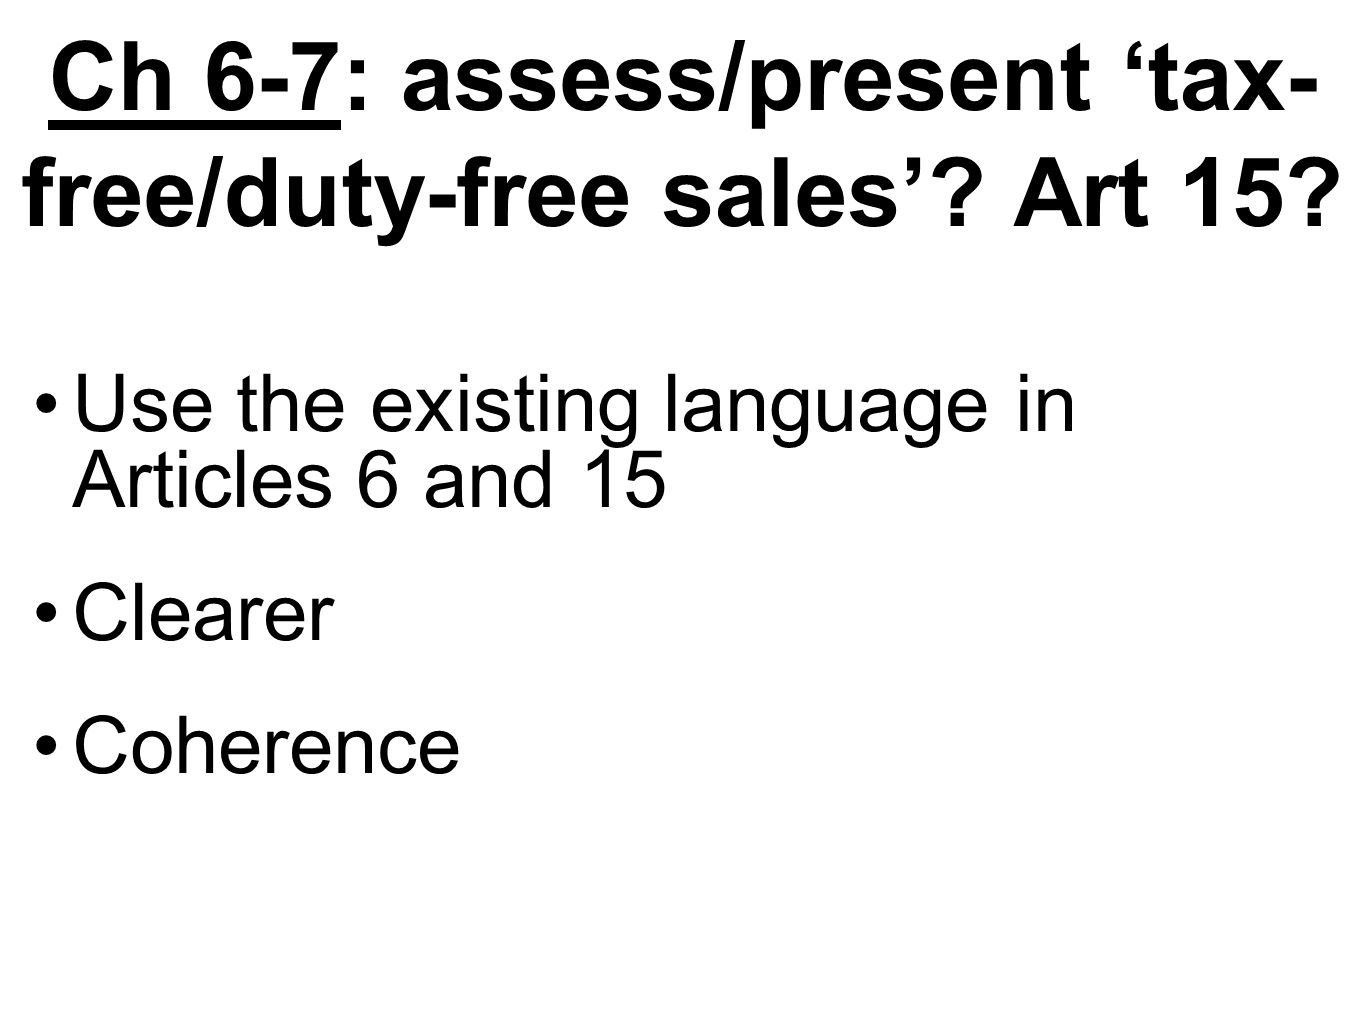 Ch 6-7: assess/present tax- free/duty-free sales? Art 15? Use the existing language in Articles 6 and 15 Clearer Coherence